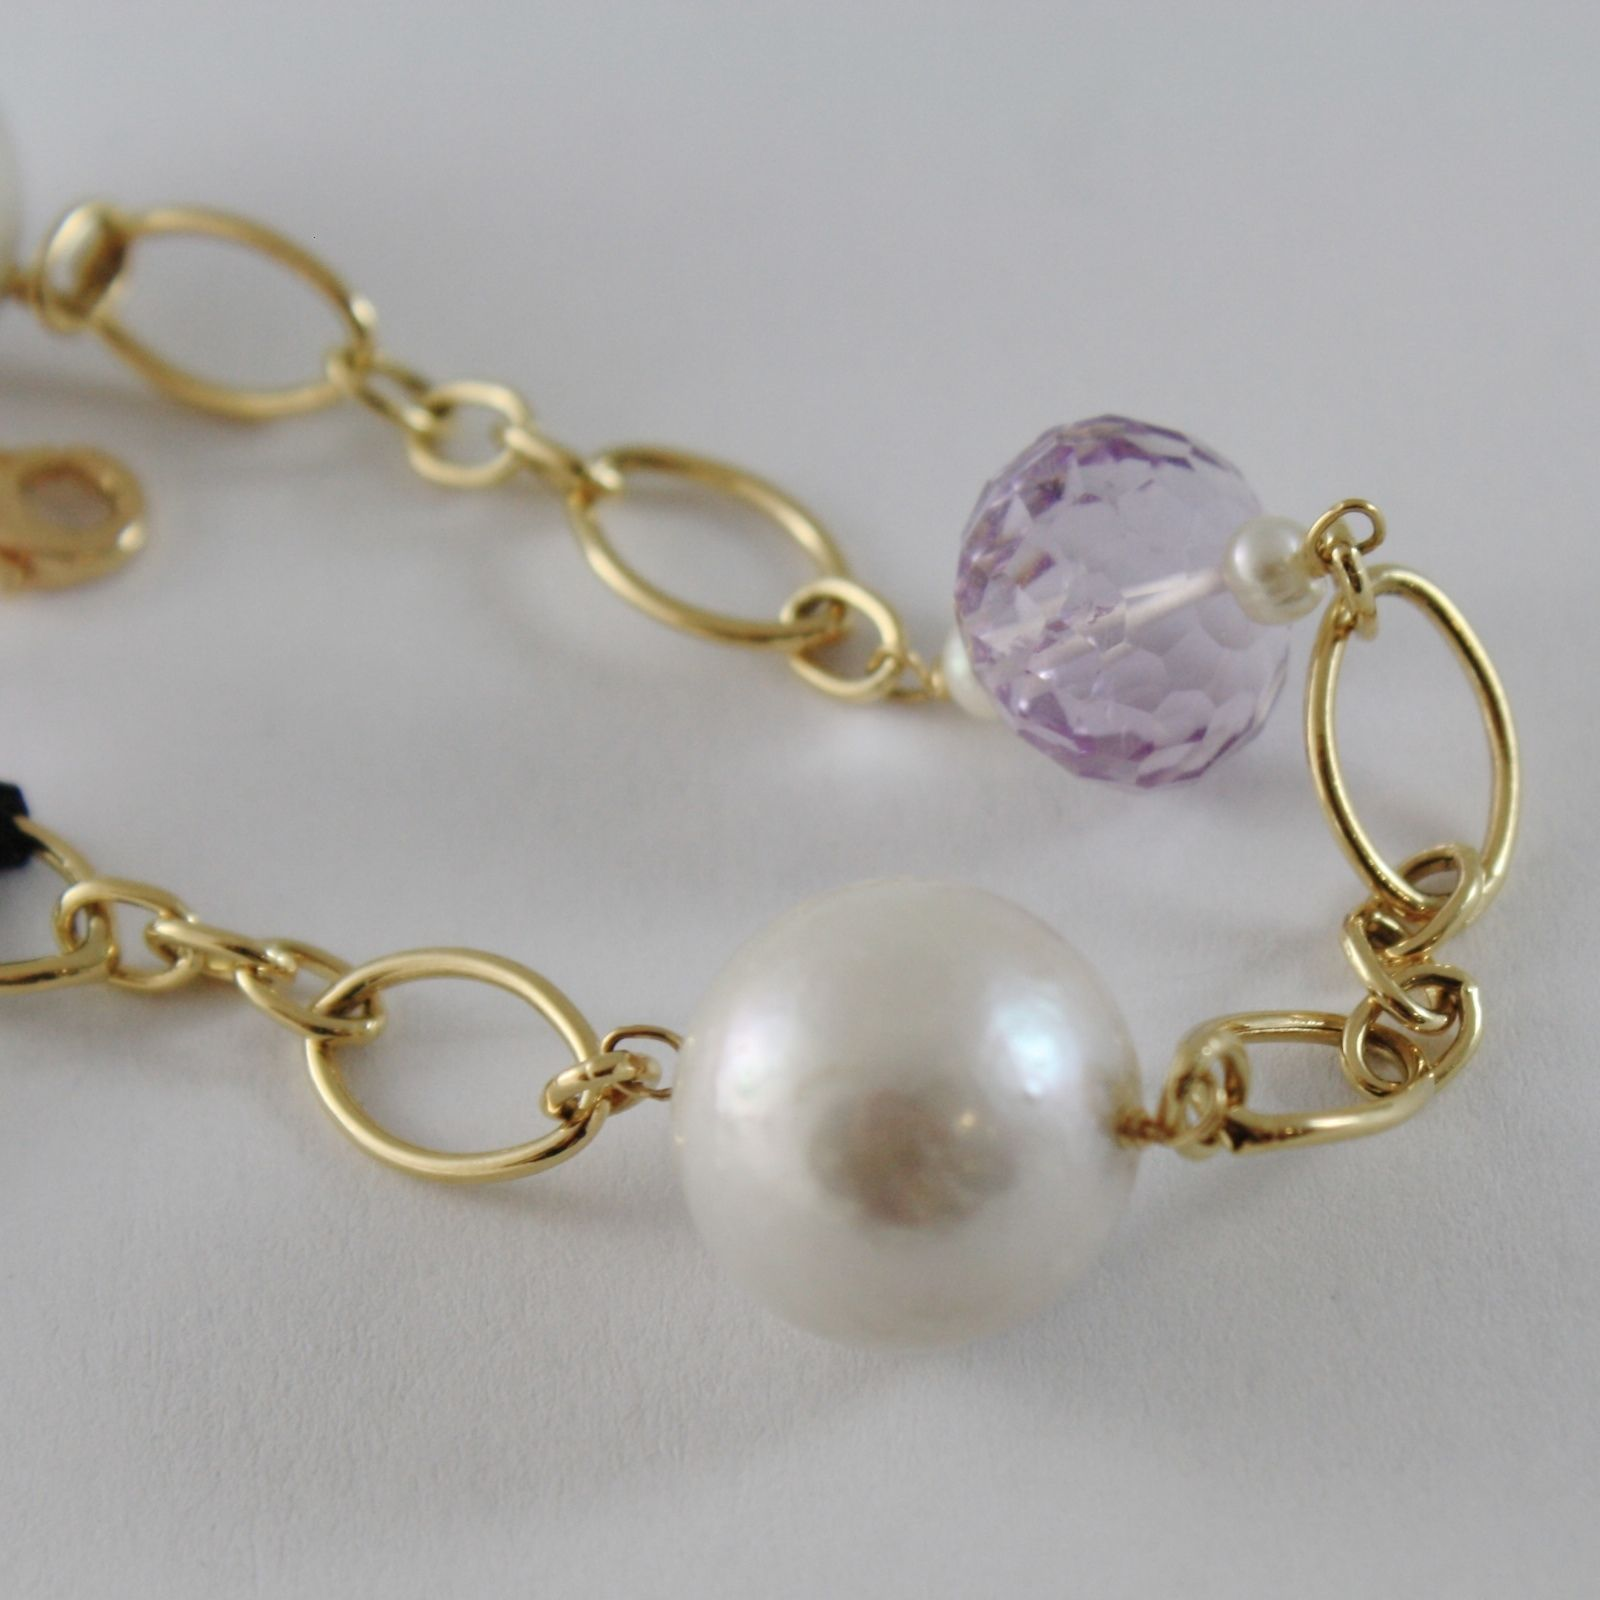 18K YELLOW GOLD BRACELET WITH BIG WHITE PEARLS & CUSHION AMETHYST MADE IN ITALY